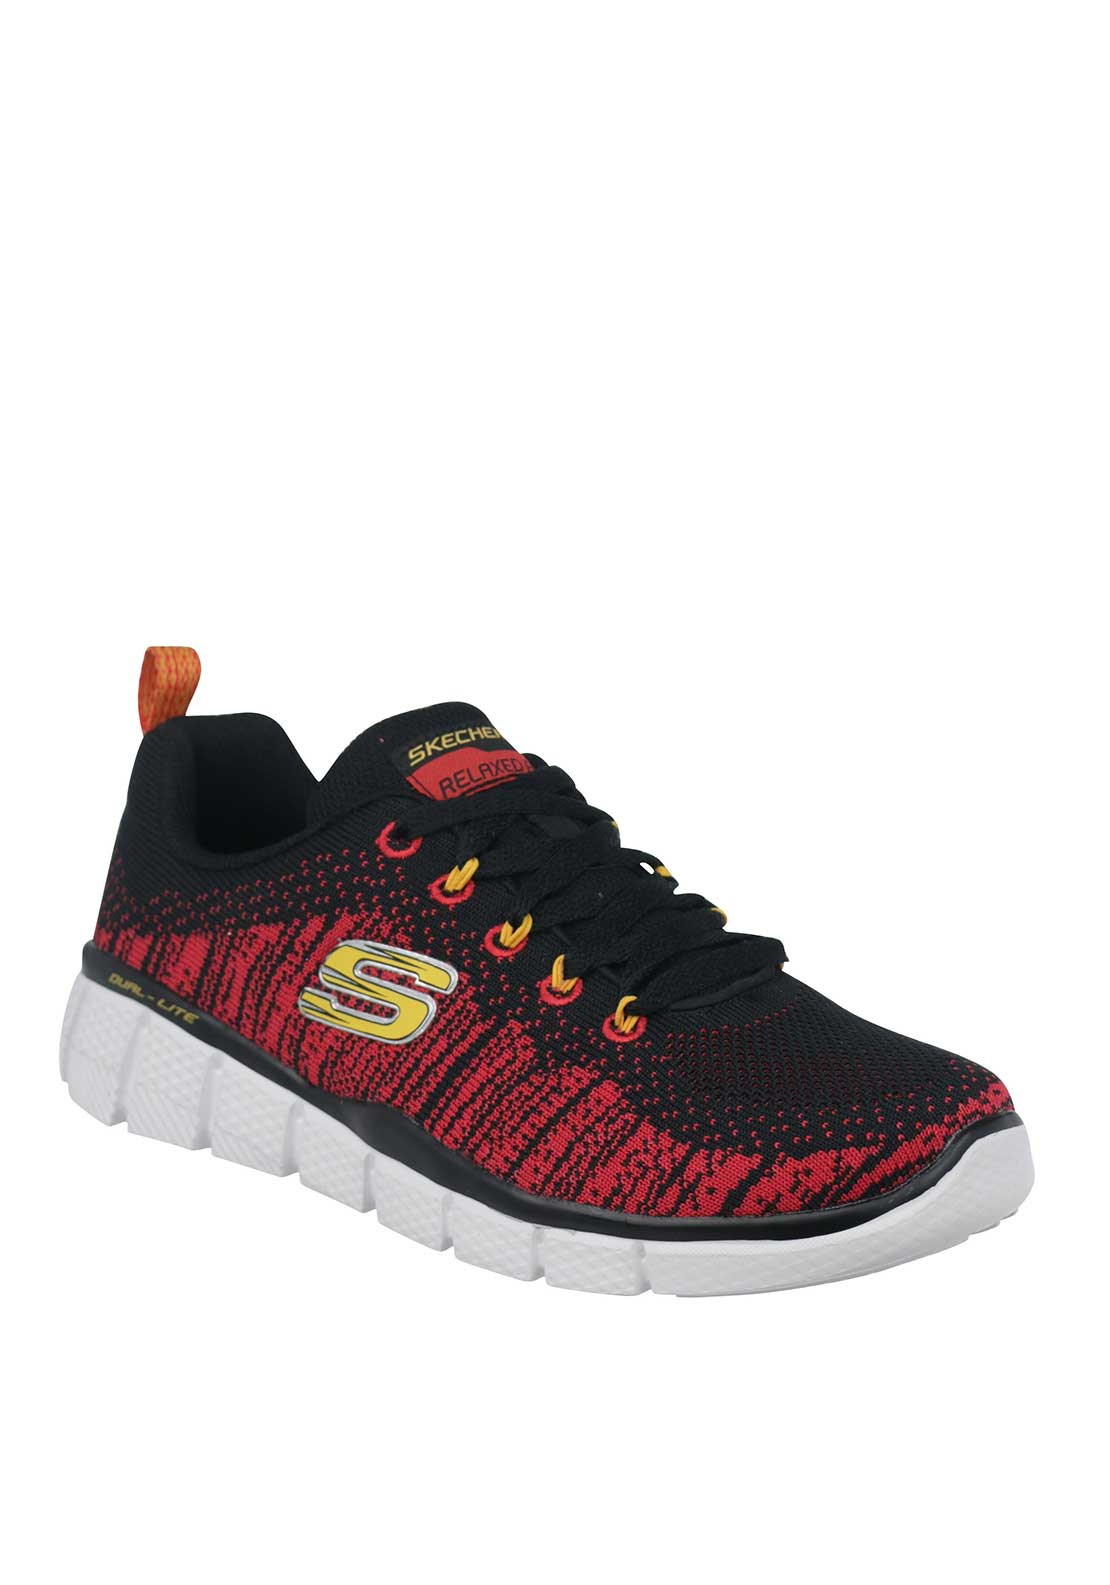 Skechers Boys Equalizer 2.0 Runners, Black